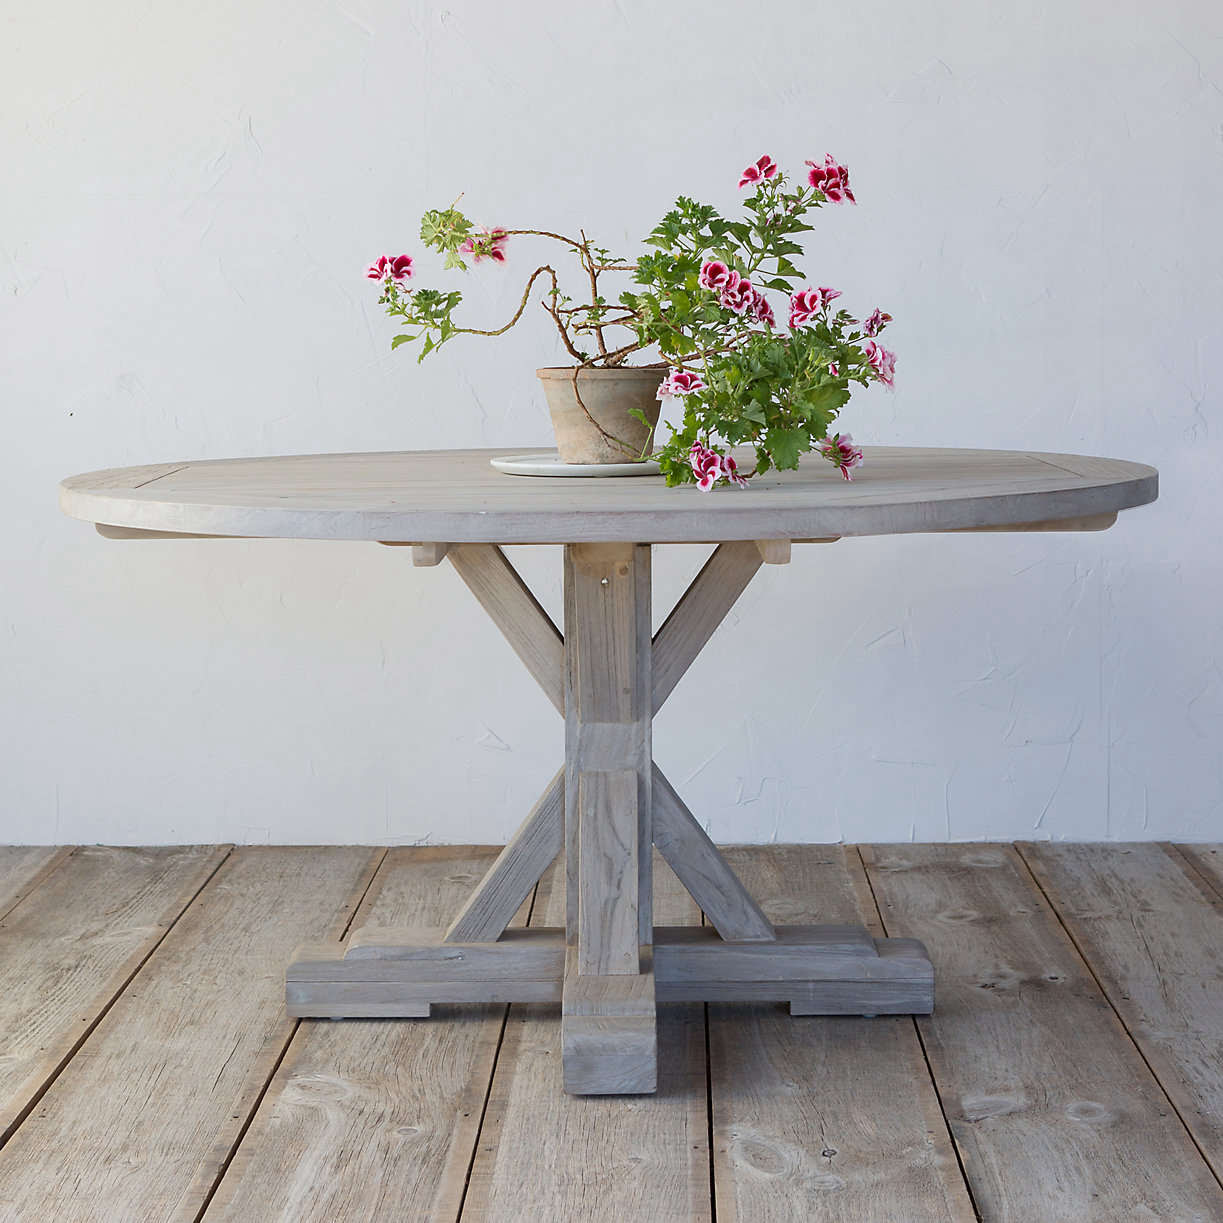 10 Easy Pieces: Round Wood Outdoor Dining Tables: Gardenista